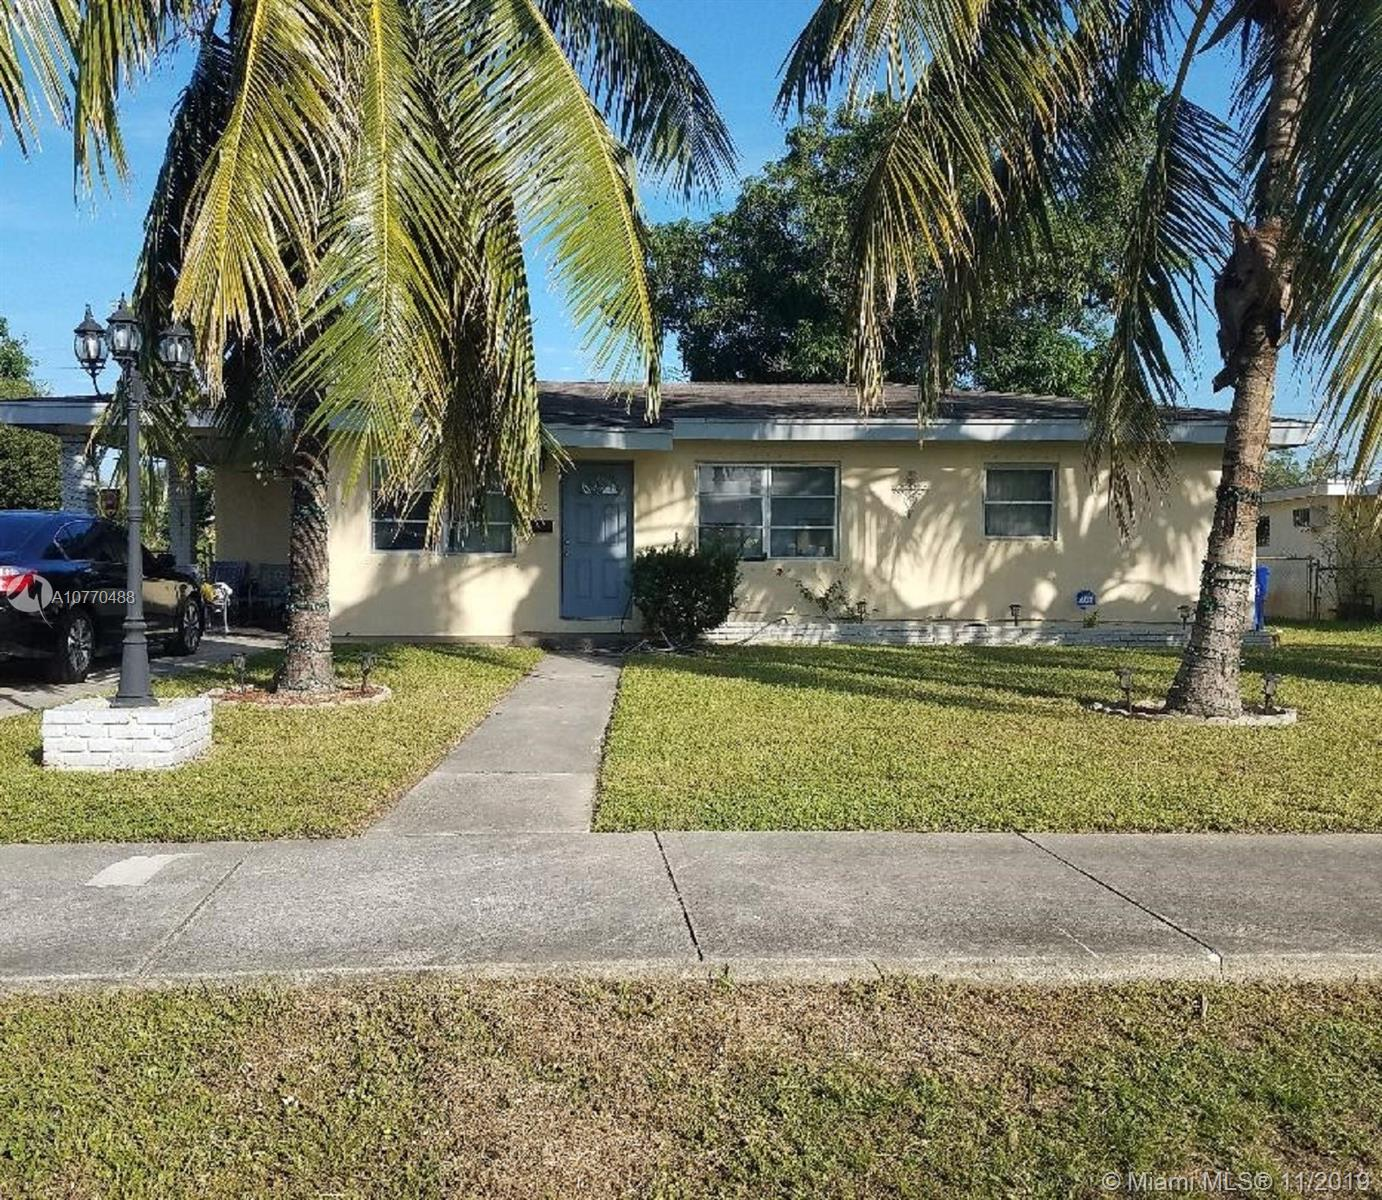 FOUR BEDROOM 2 BATH HOME ON A LARGE LOT.  HOME HAS TILE THROUGHOUT, CENTRAL A/C, GRANITE COUNTERS, STAINLESS STEELE APPLIANCES.  1 BEDROOM/1 BATH HAS IS OWN ENTRANCE WHICH IS IDEAL FOR A TENANT.  UTILITY ROOM, LARGE FENCED YARD. CARPORT